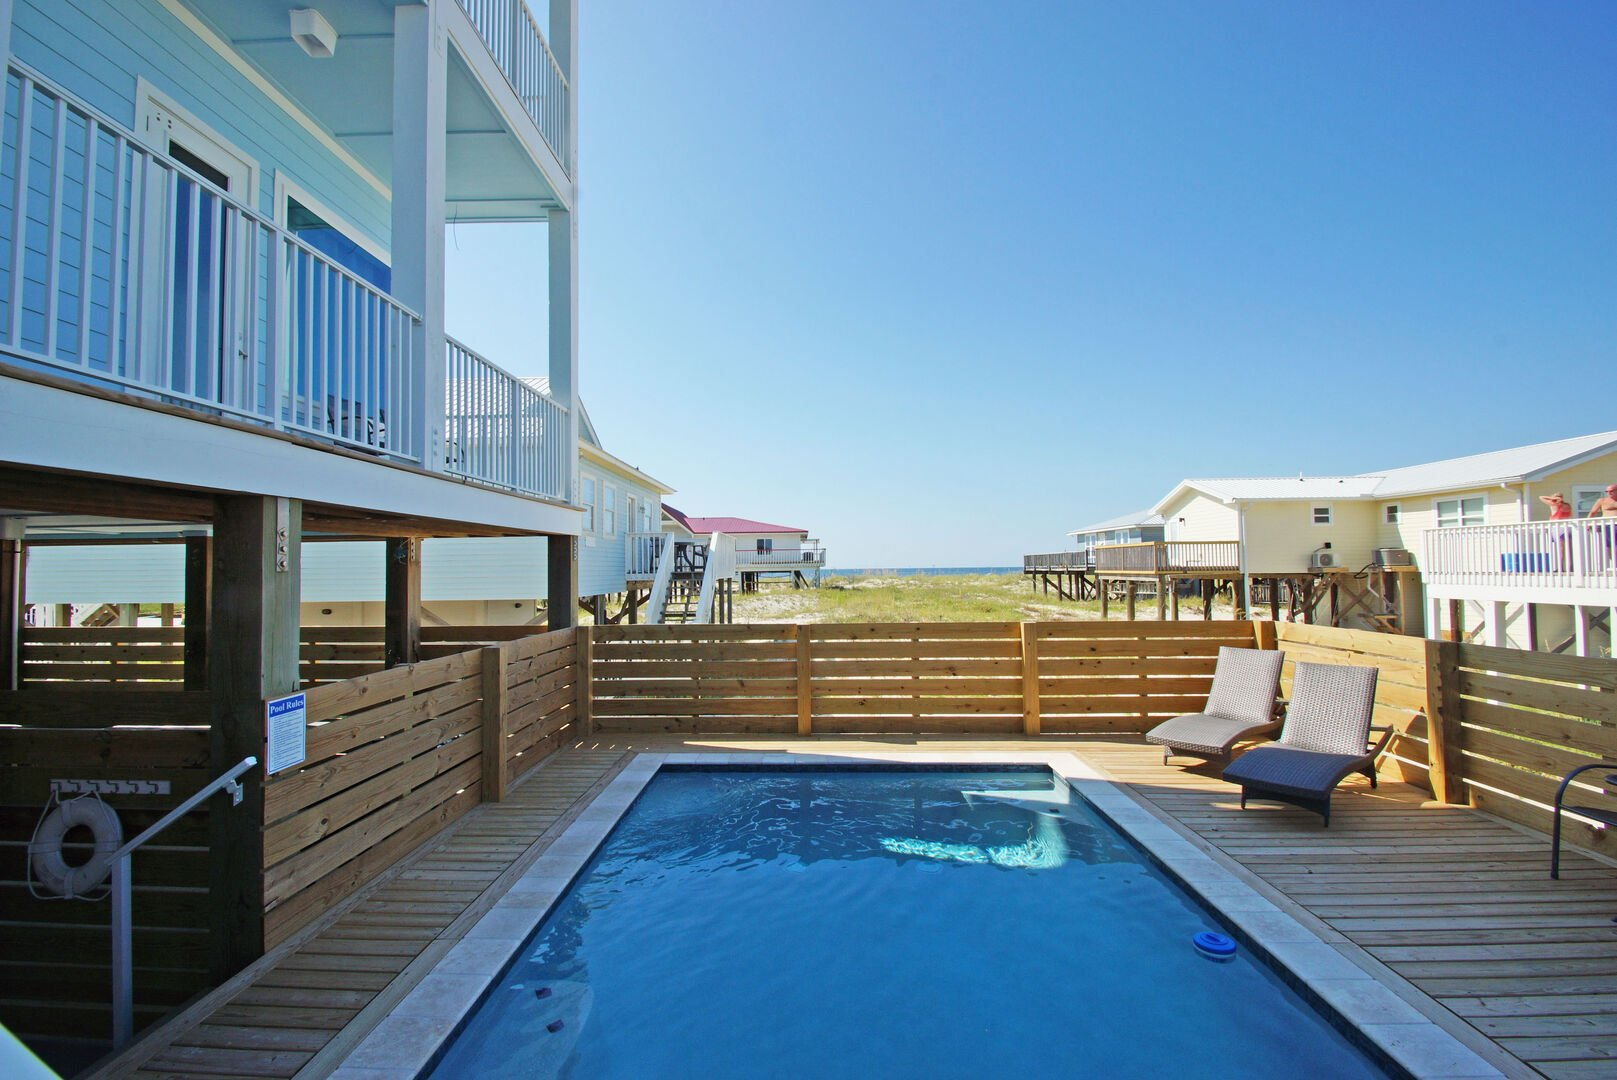 Beach views from the private pool of this Vacation Home in Gulf Shores.